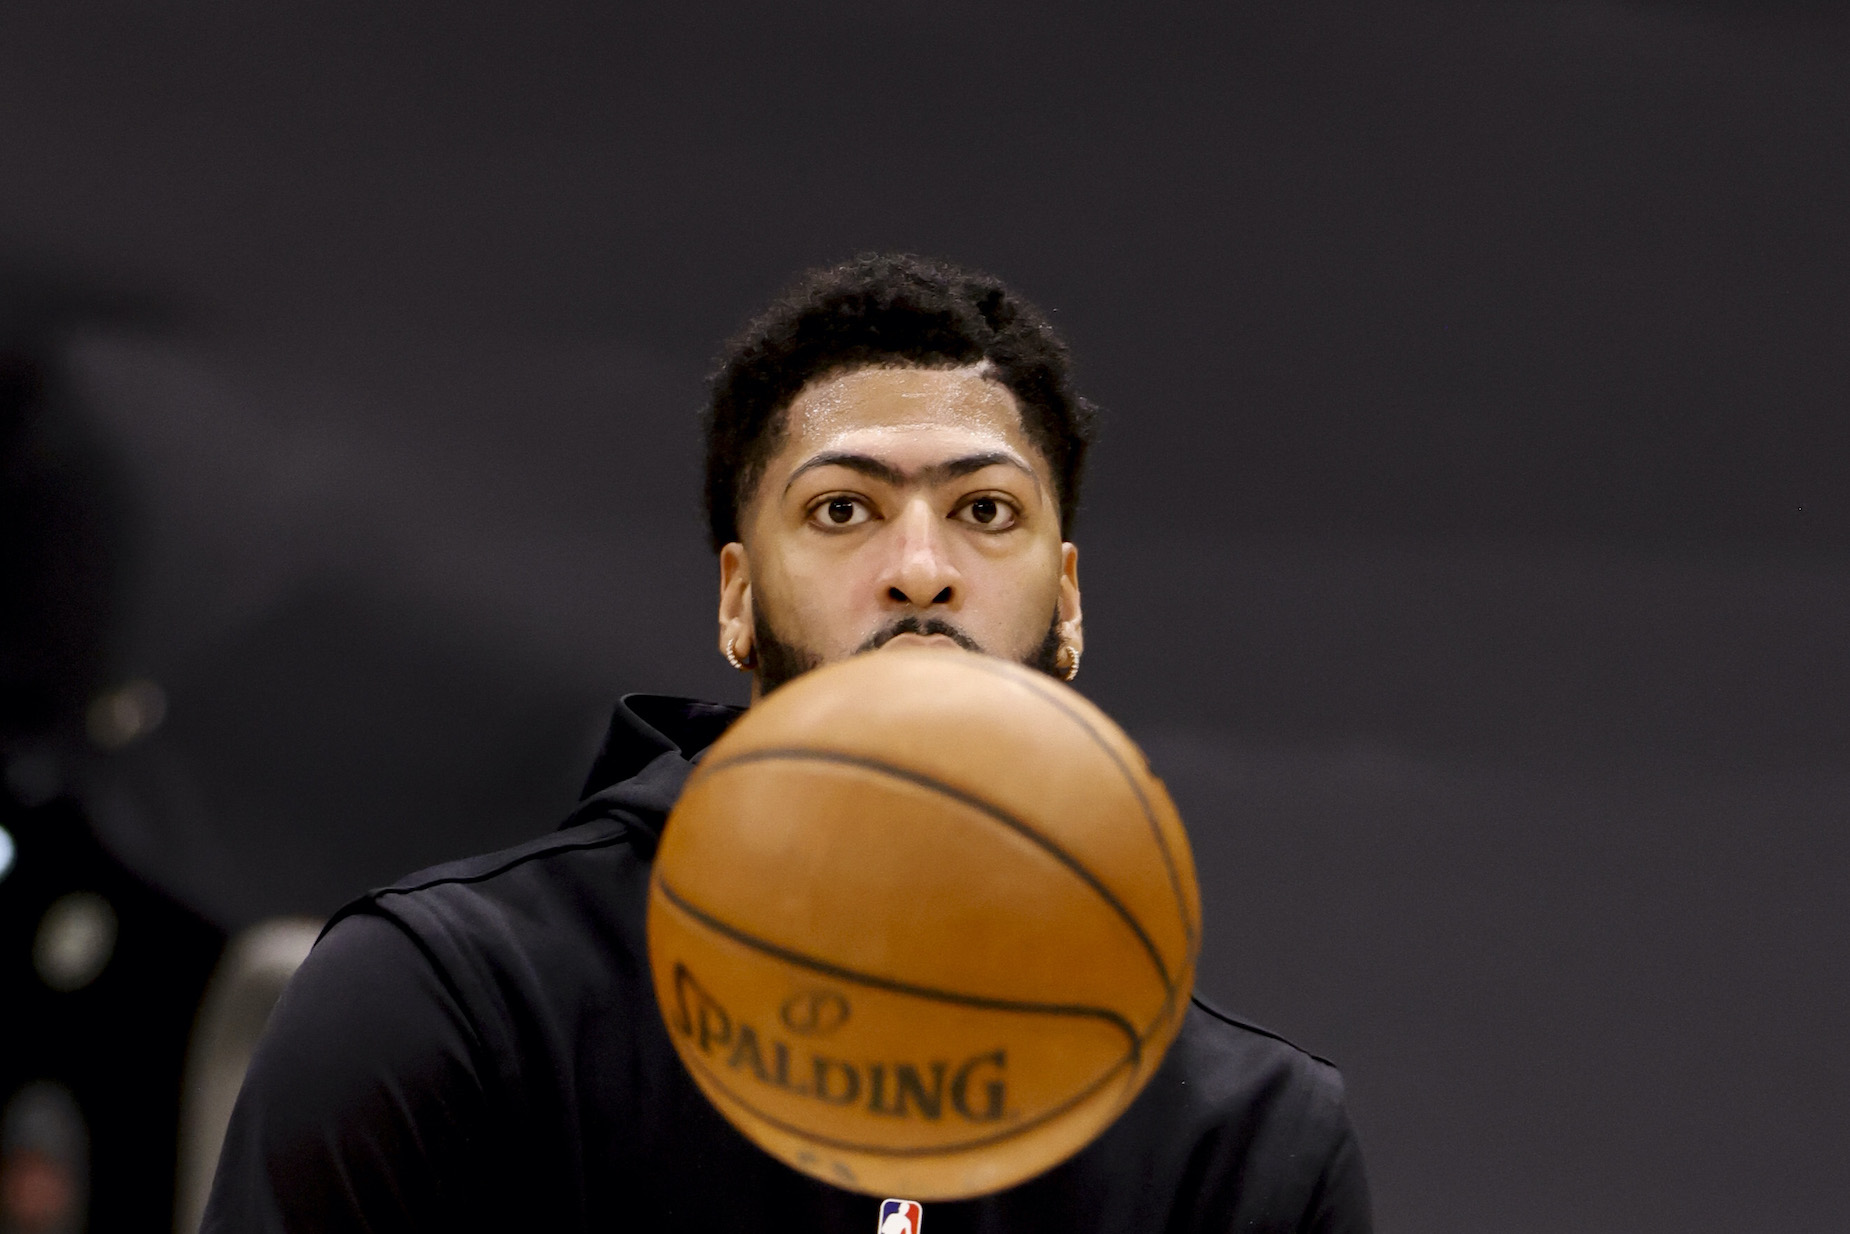 Lakers big man Anthony Davis on the court ahead of a game in April 2021.